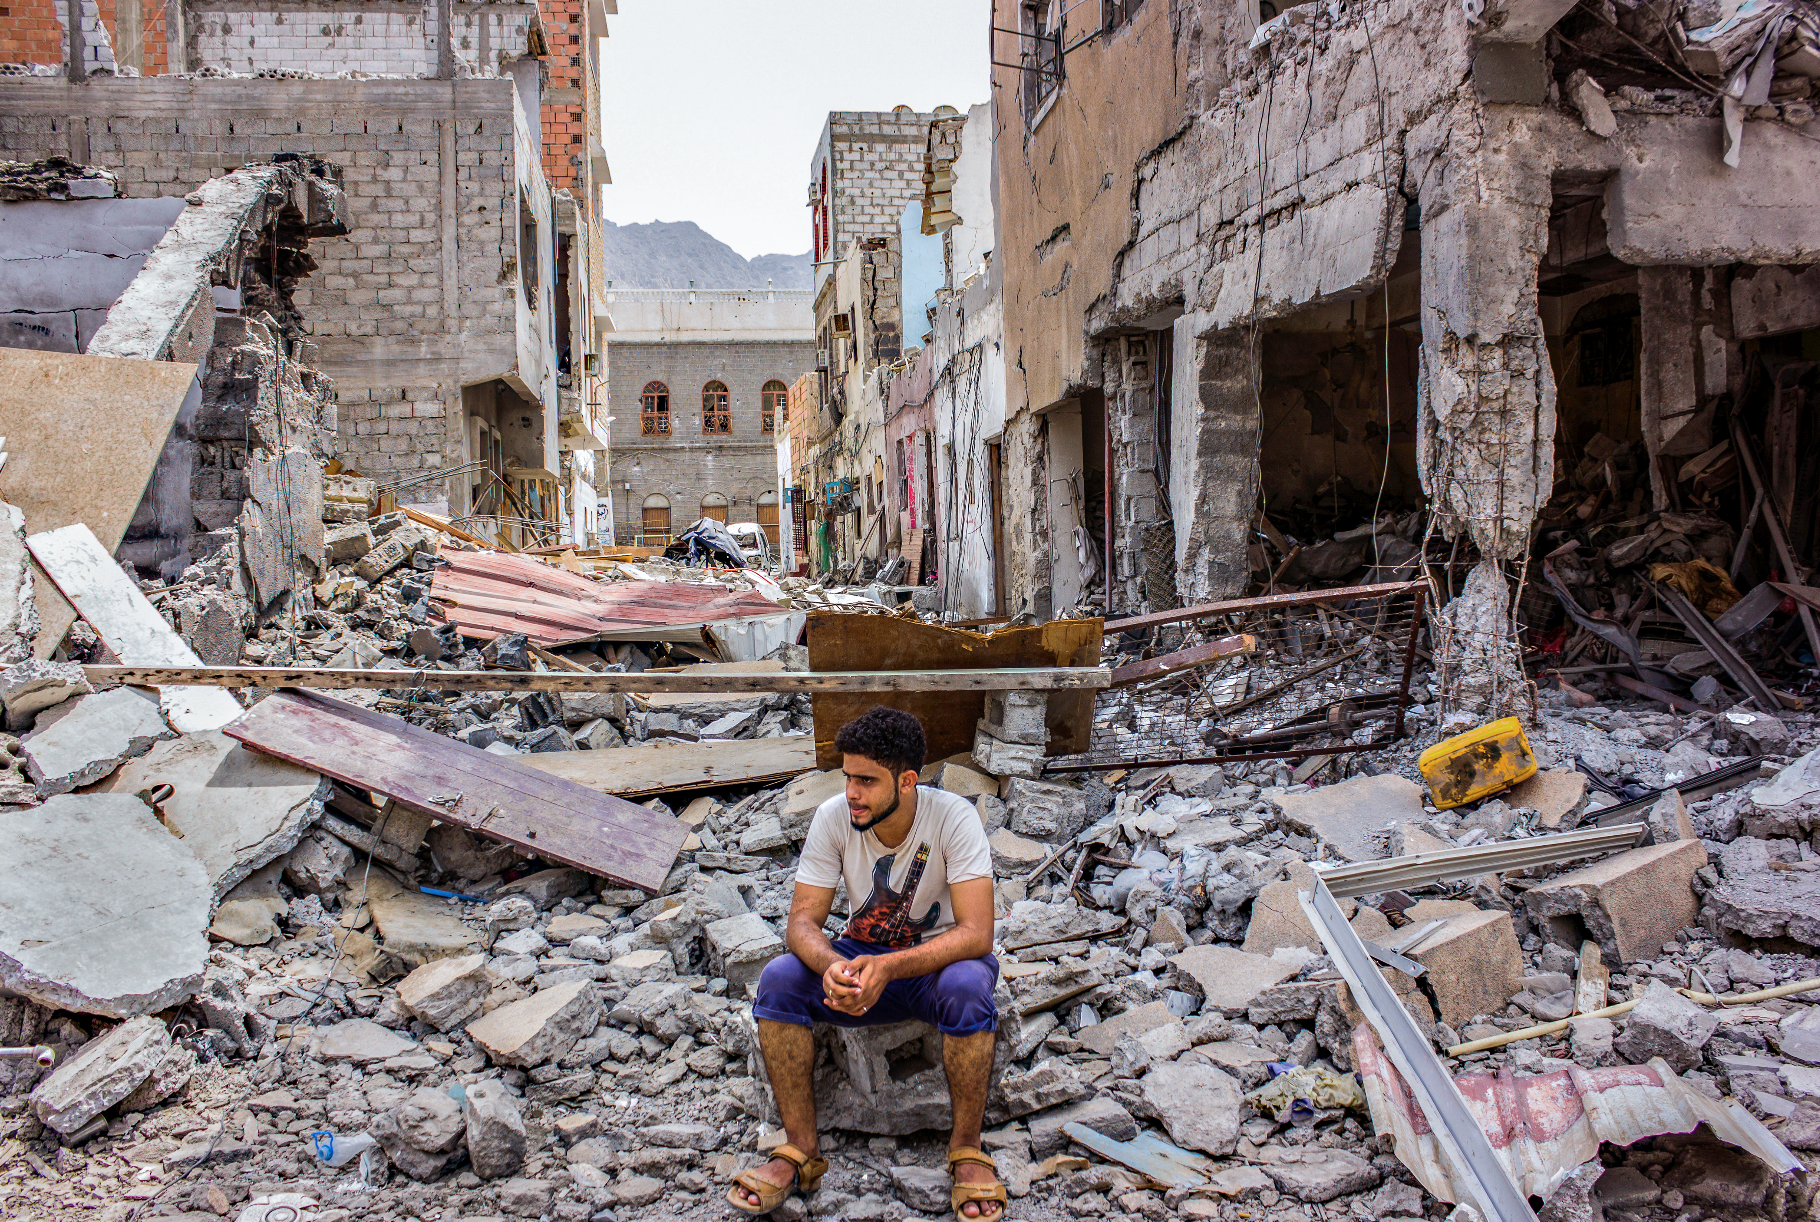 COVID-19 devastates already desperate, ravaged Yemen | SDG Integration